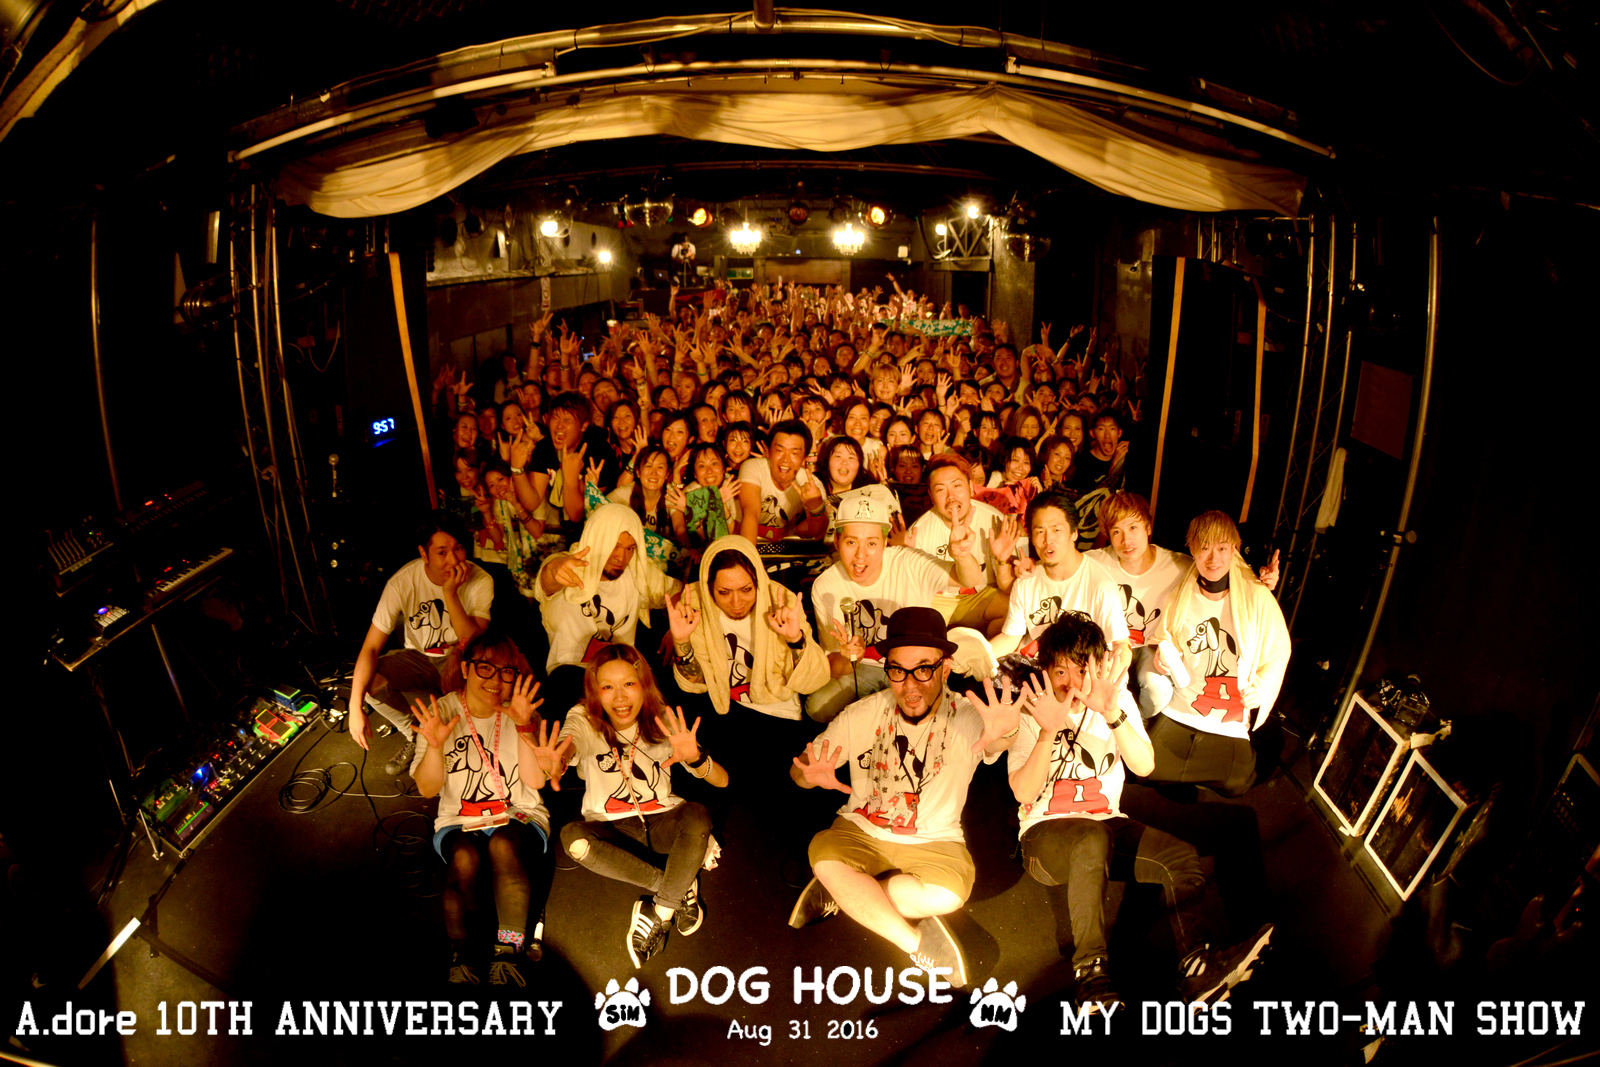 【A DOG HOUSE】20160830_NOISEMAKER